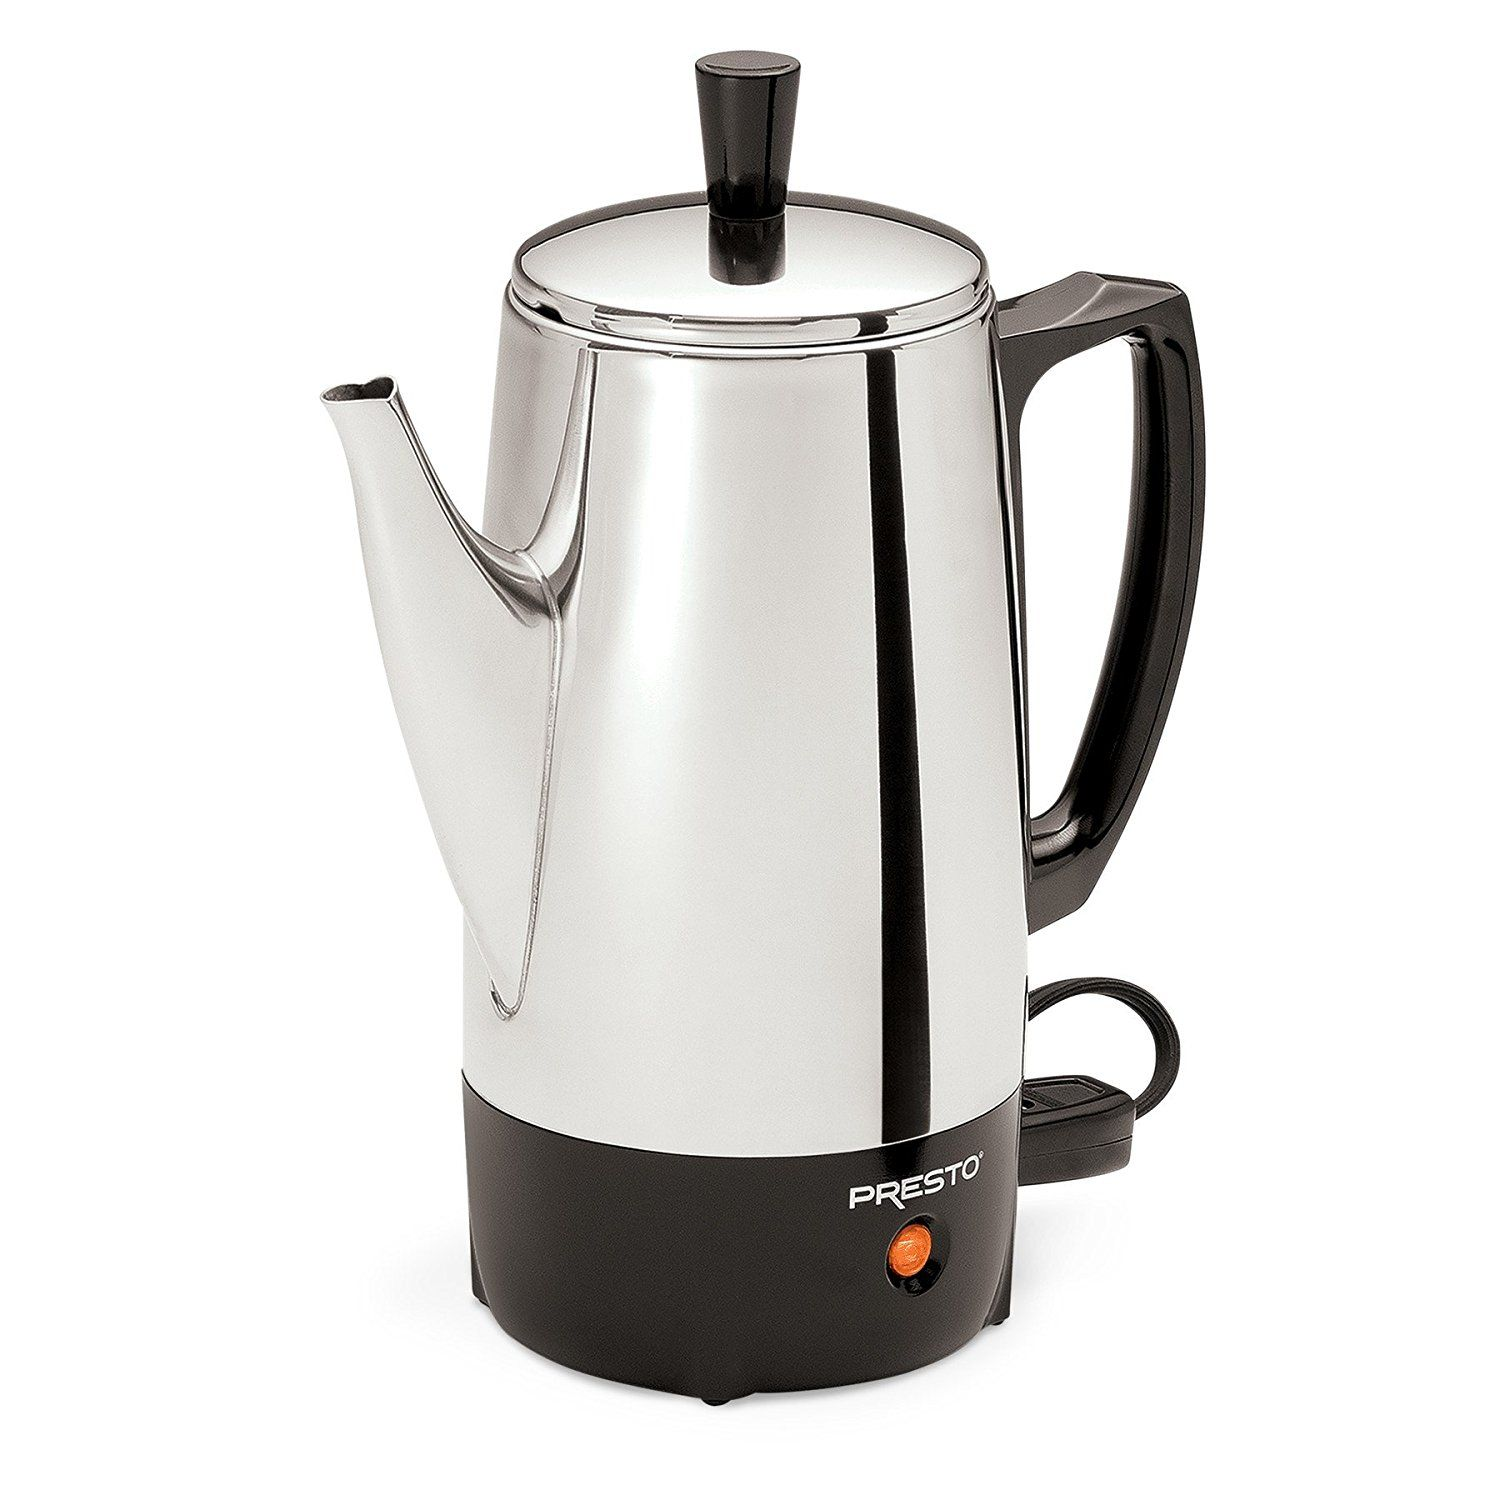 Amazon Com Presto 02811 12 Cup Stainless Steel Coffee Maker Electric Coffee Percolators Percolator Coffee Stainless Steel Coffee Maker Stainless Steel Coffee